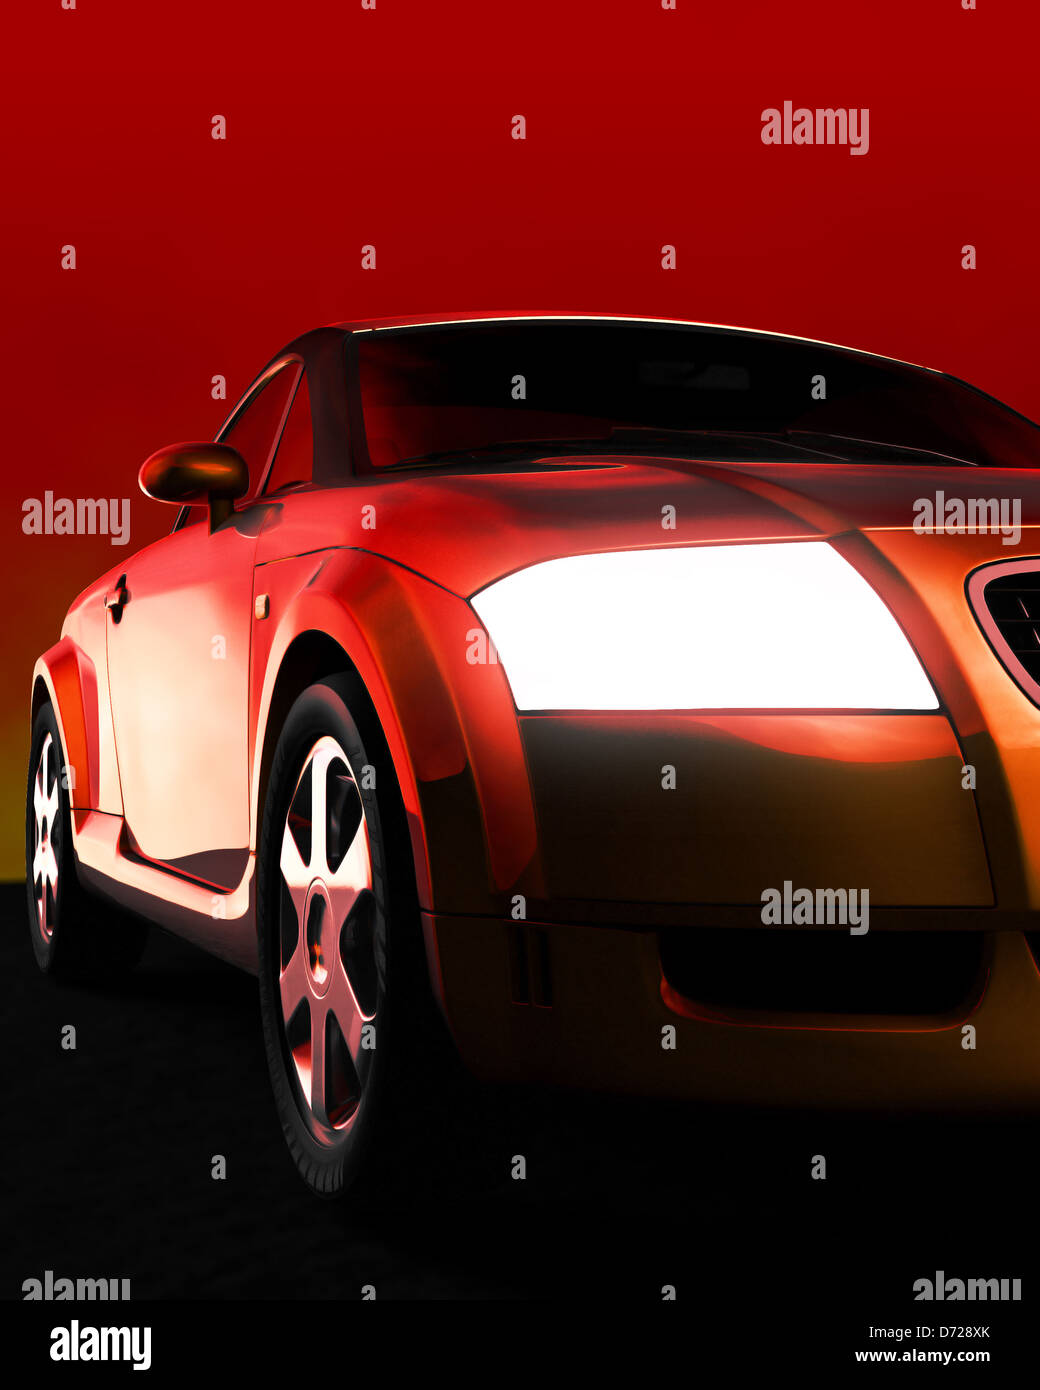 Car illustration - Stock Image